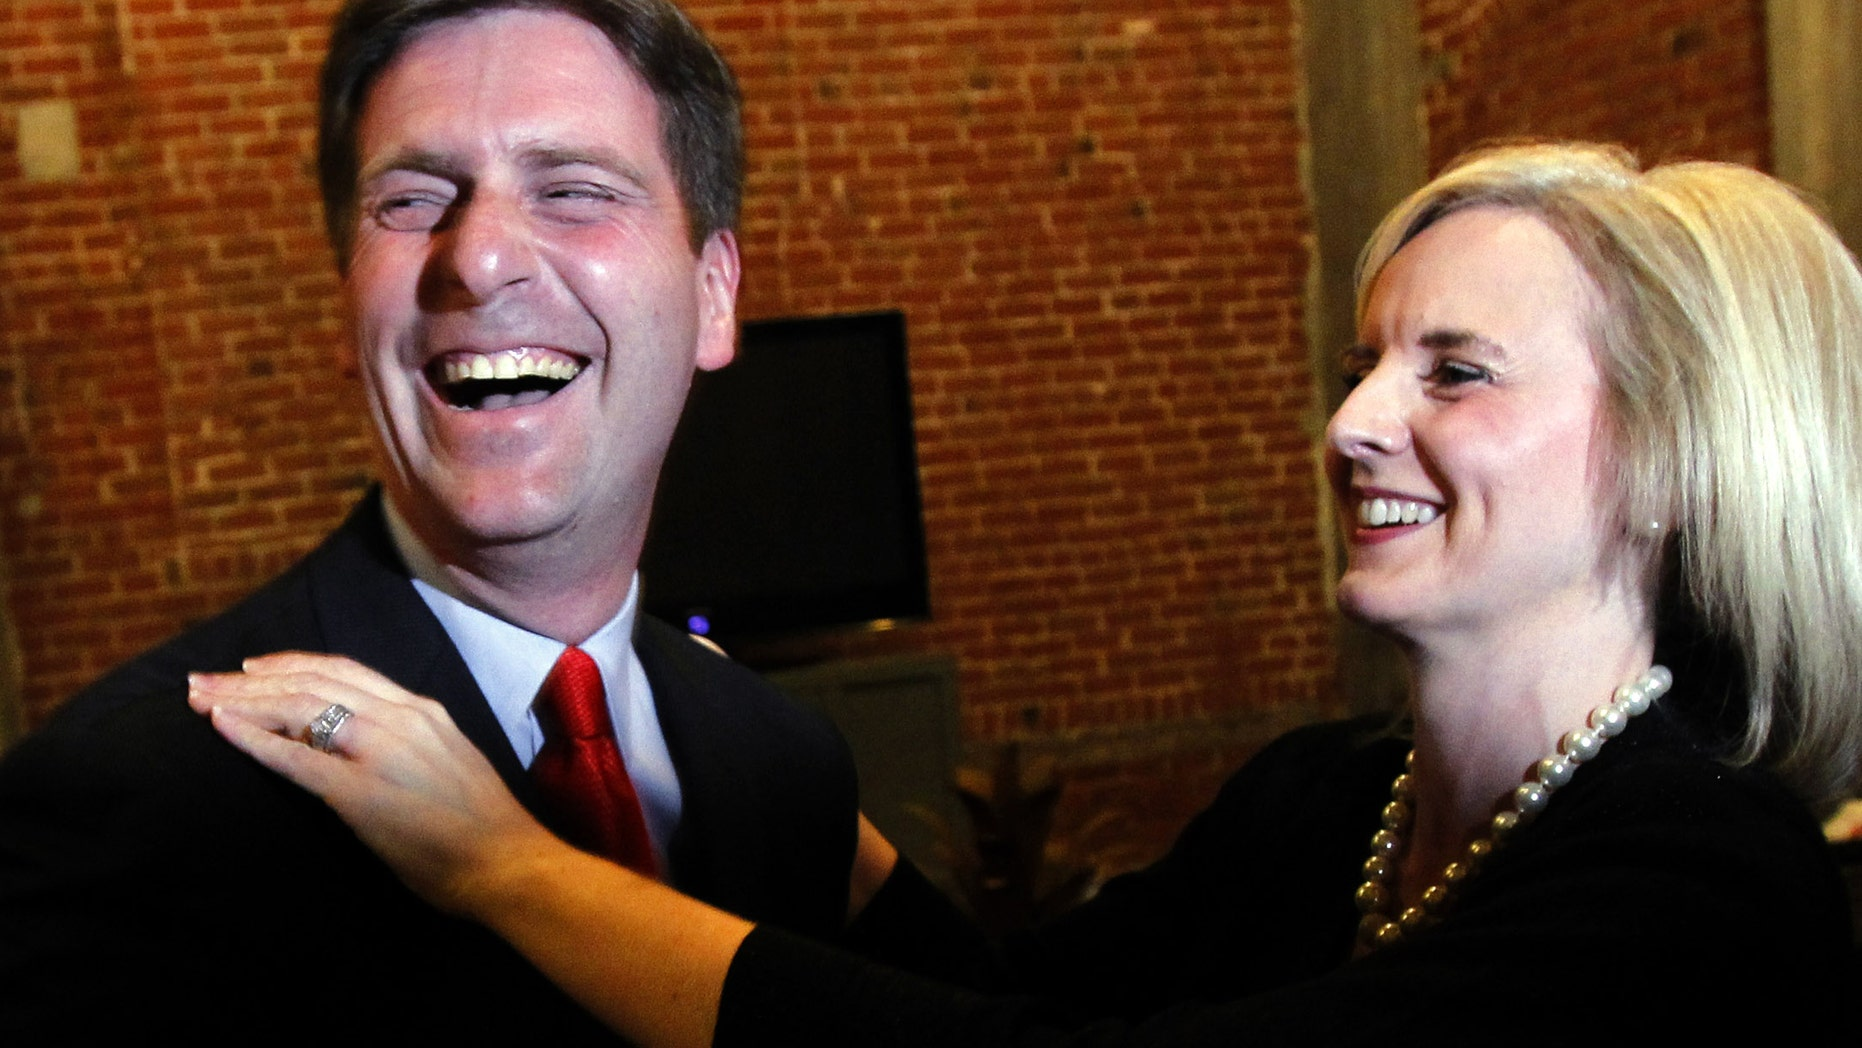 Democratic candidate for Phoenix mayor Greg Stanton, left, celebrates with his wife Nicole France Stanton after learning about positive early election results, Tuesday, Nov. 8, 2011, in Phoenix. Stanton defeated Republican Wes Gullett to become the new mayor of Phoenix. (AP Photo/Ross D. Franklin)